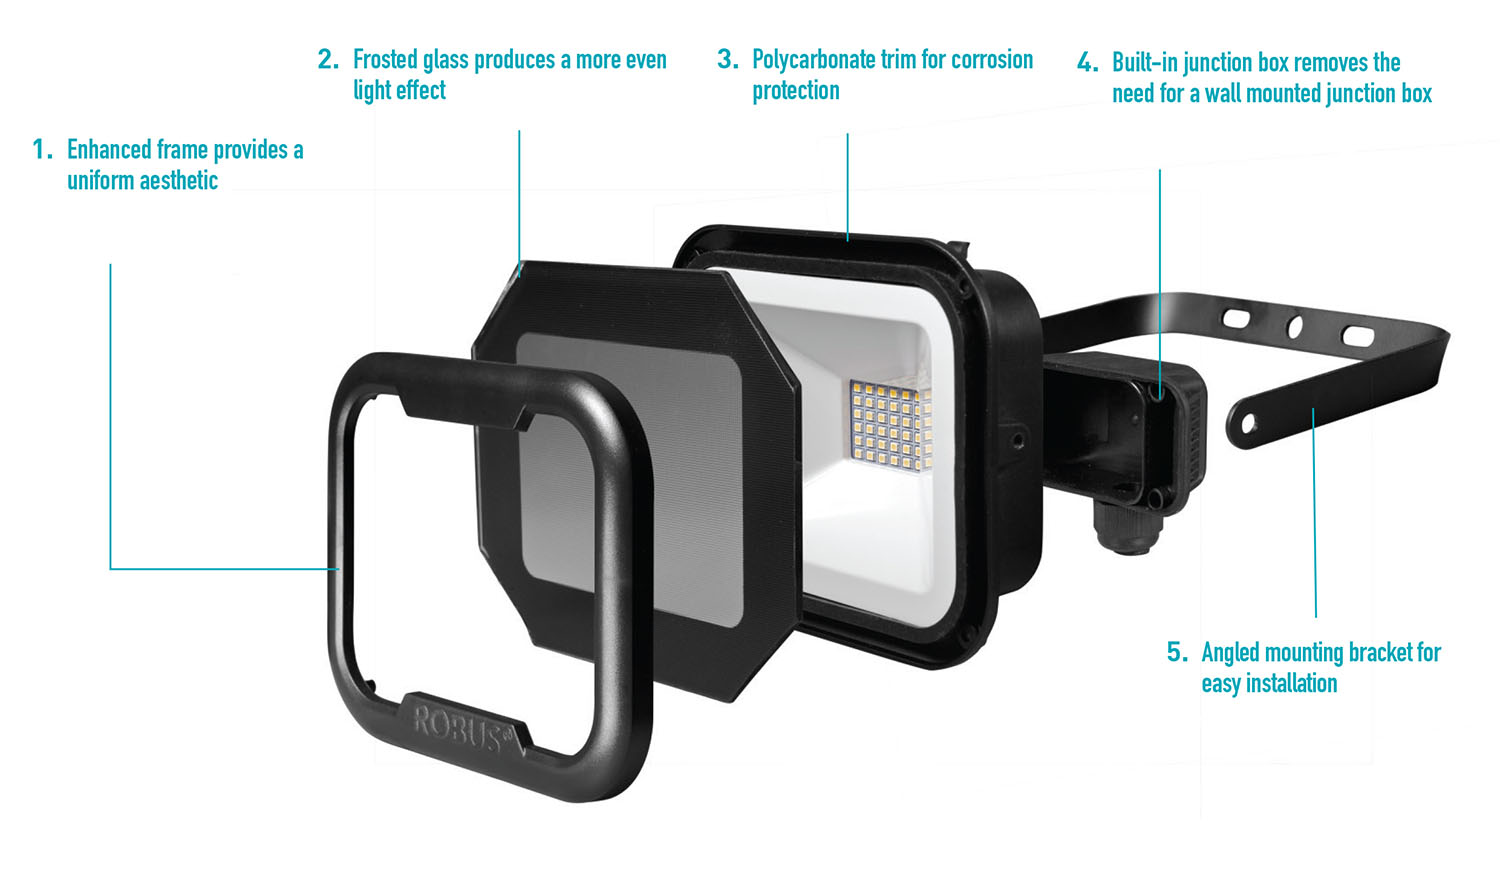 REMY LED Flood Light Anatomy | ROBUS